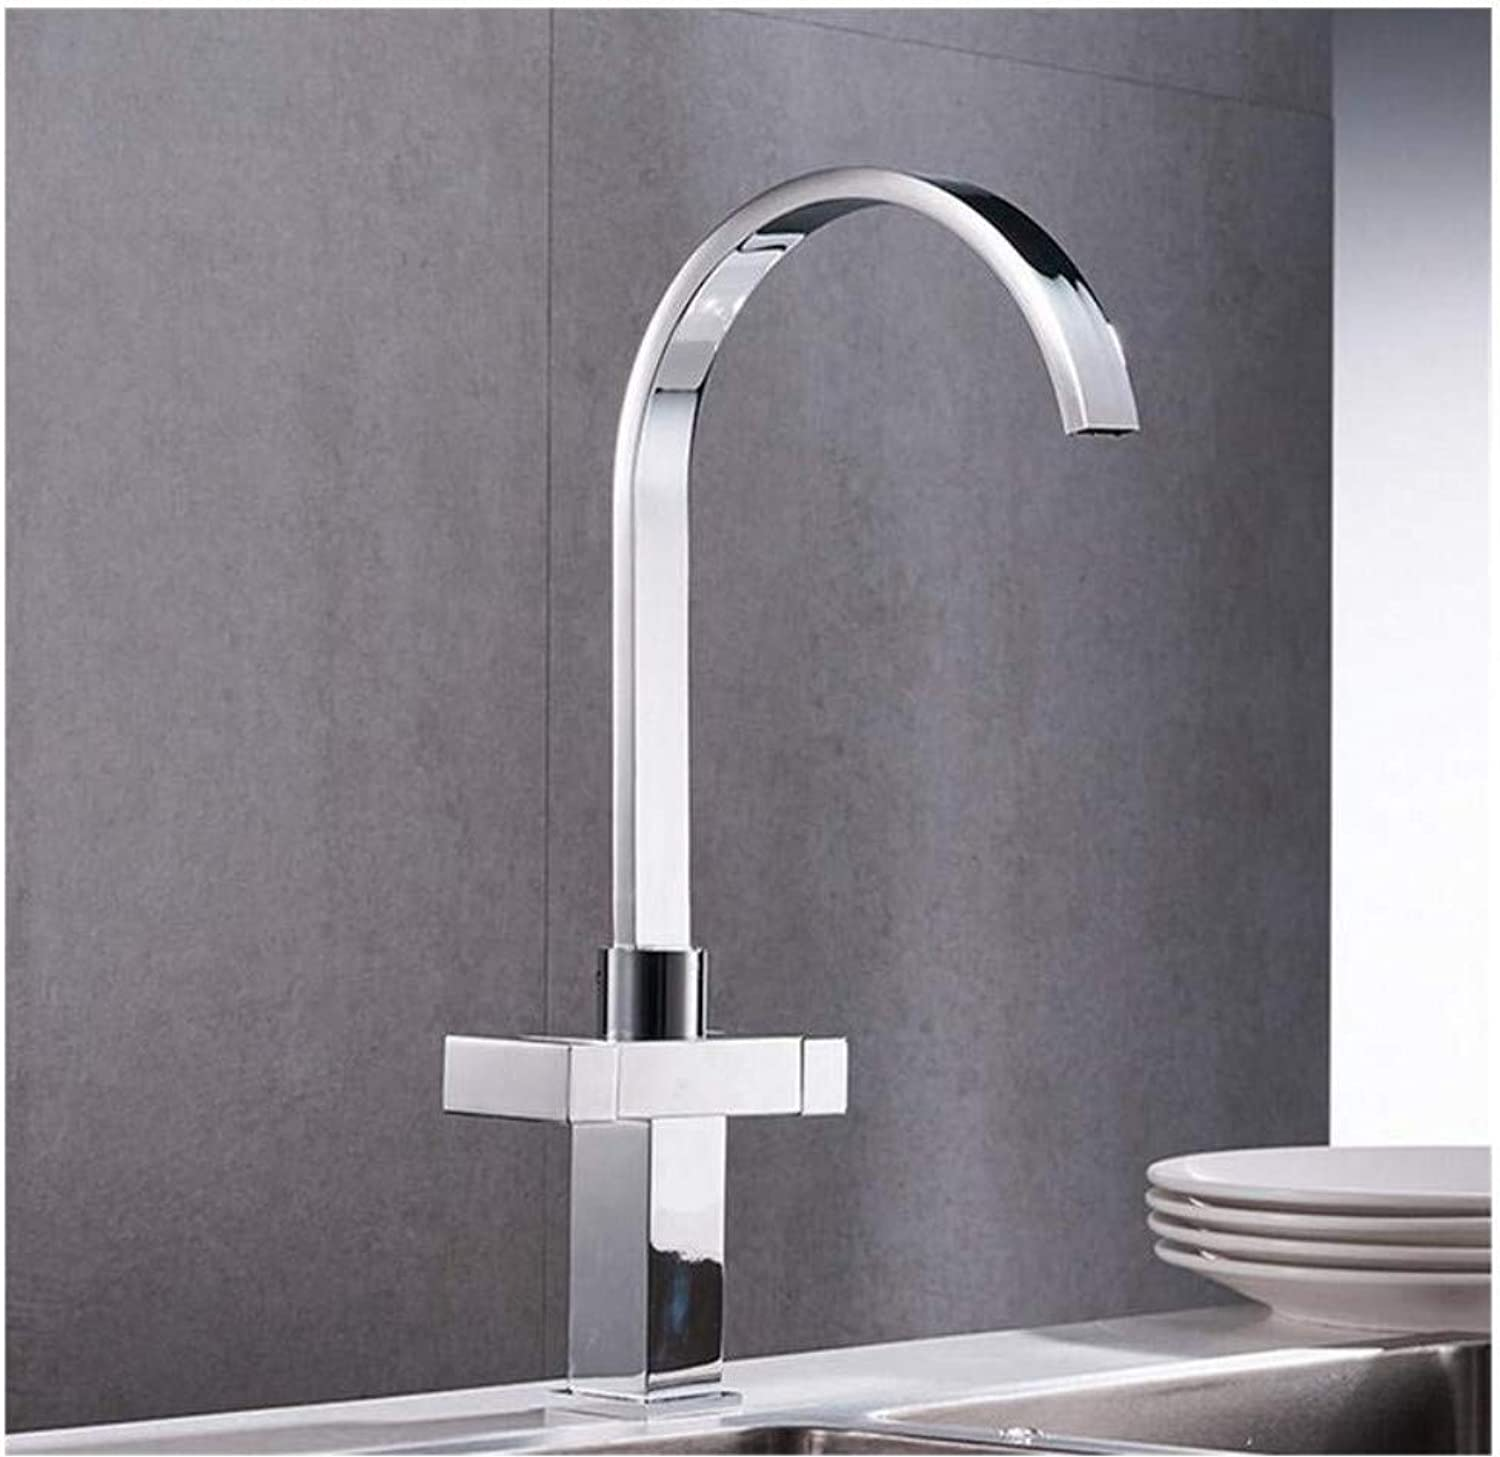 Faucet Lead-Free Square Innovationfaucet 360 Degree redation Mixer Tap